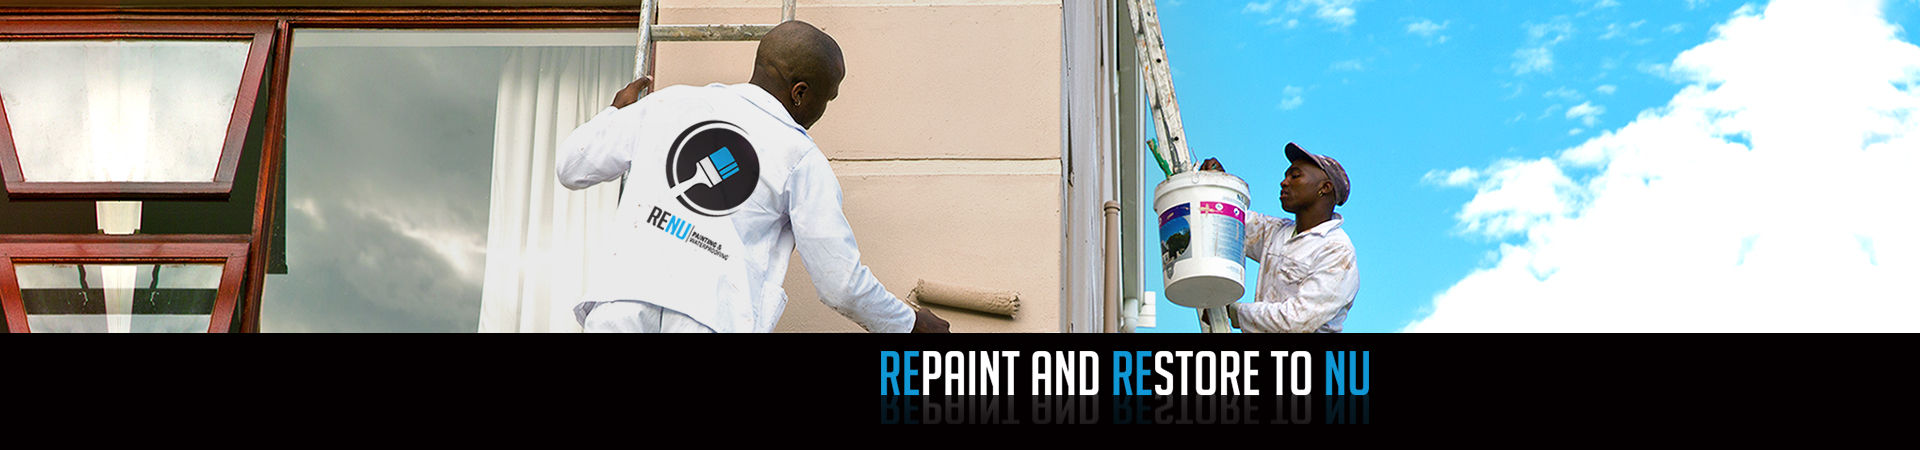 REpaint and REstore to NU - Request a Quote